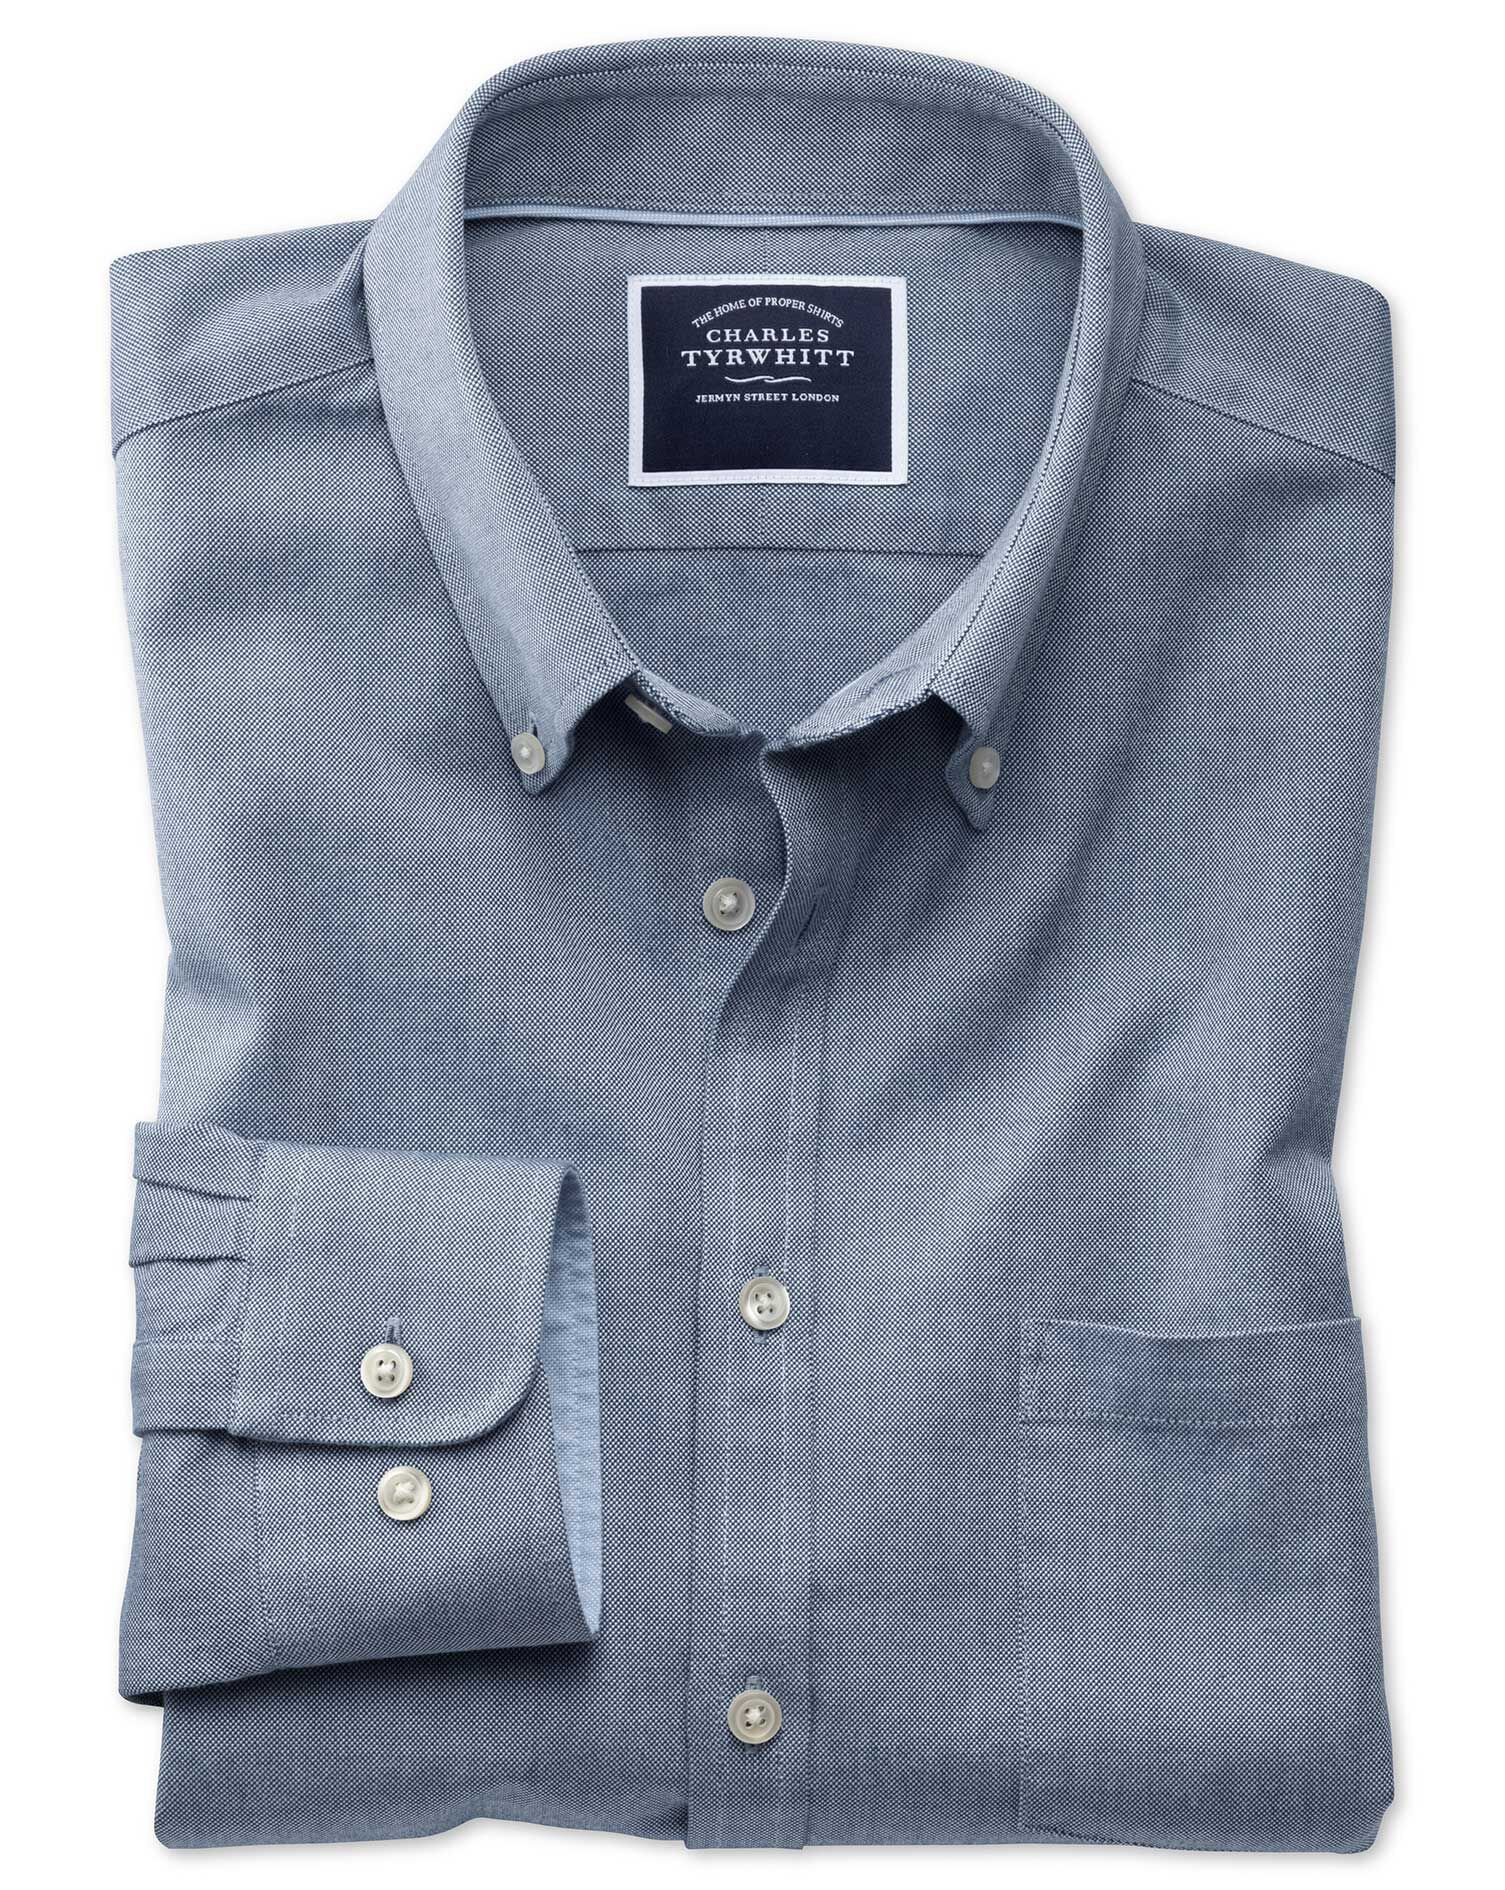 Classic Fit Button-Down Washed Oxford Plain Indigo Blue Cotton Shirt Single Cuff Size XXXL by Charle